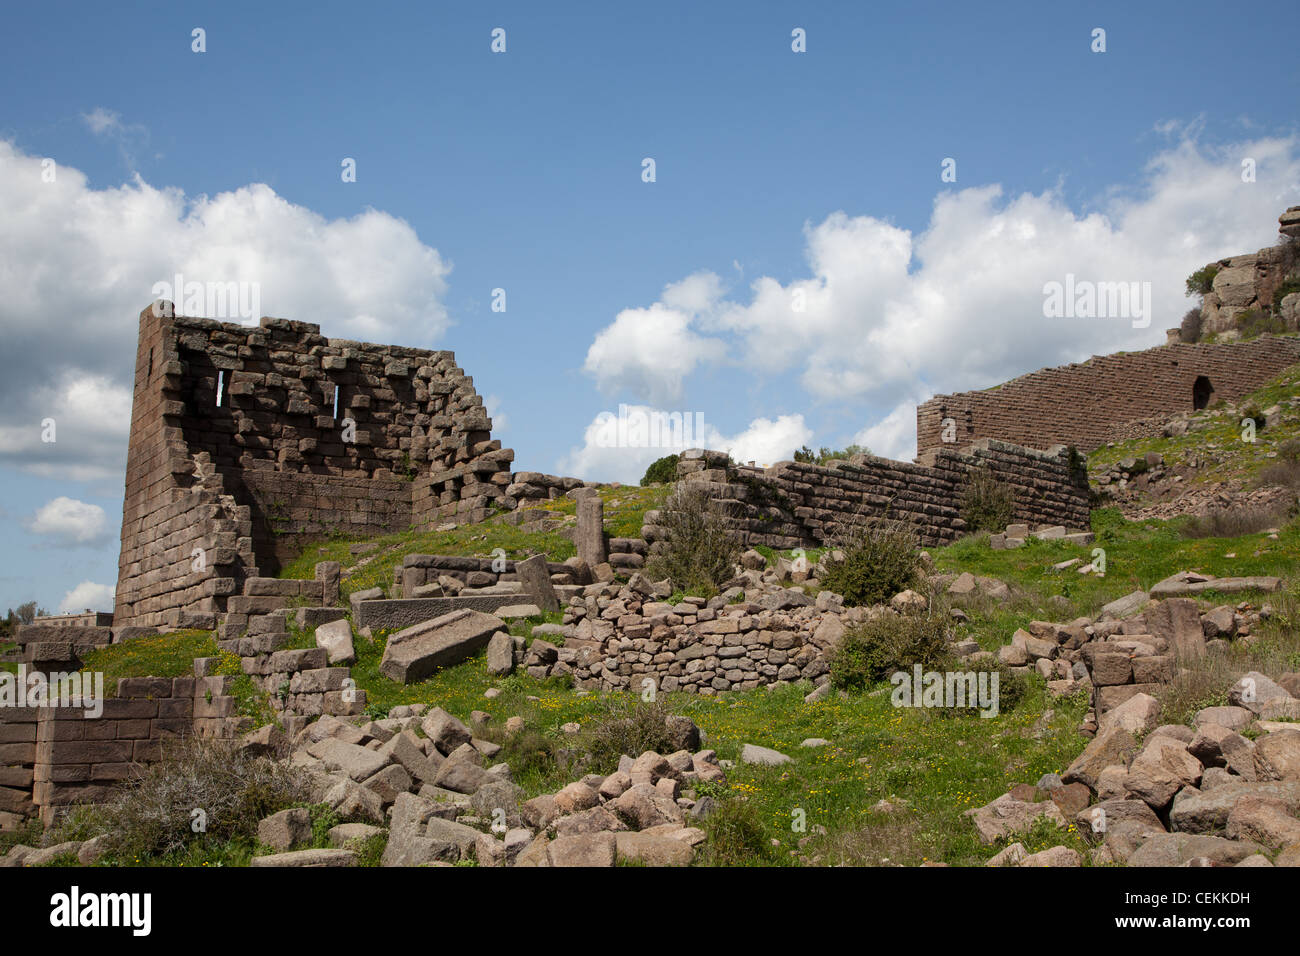 Turkey, Assos, Hellenistic Walls - Stock Image